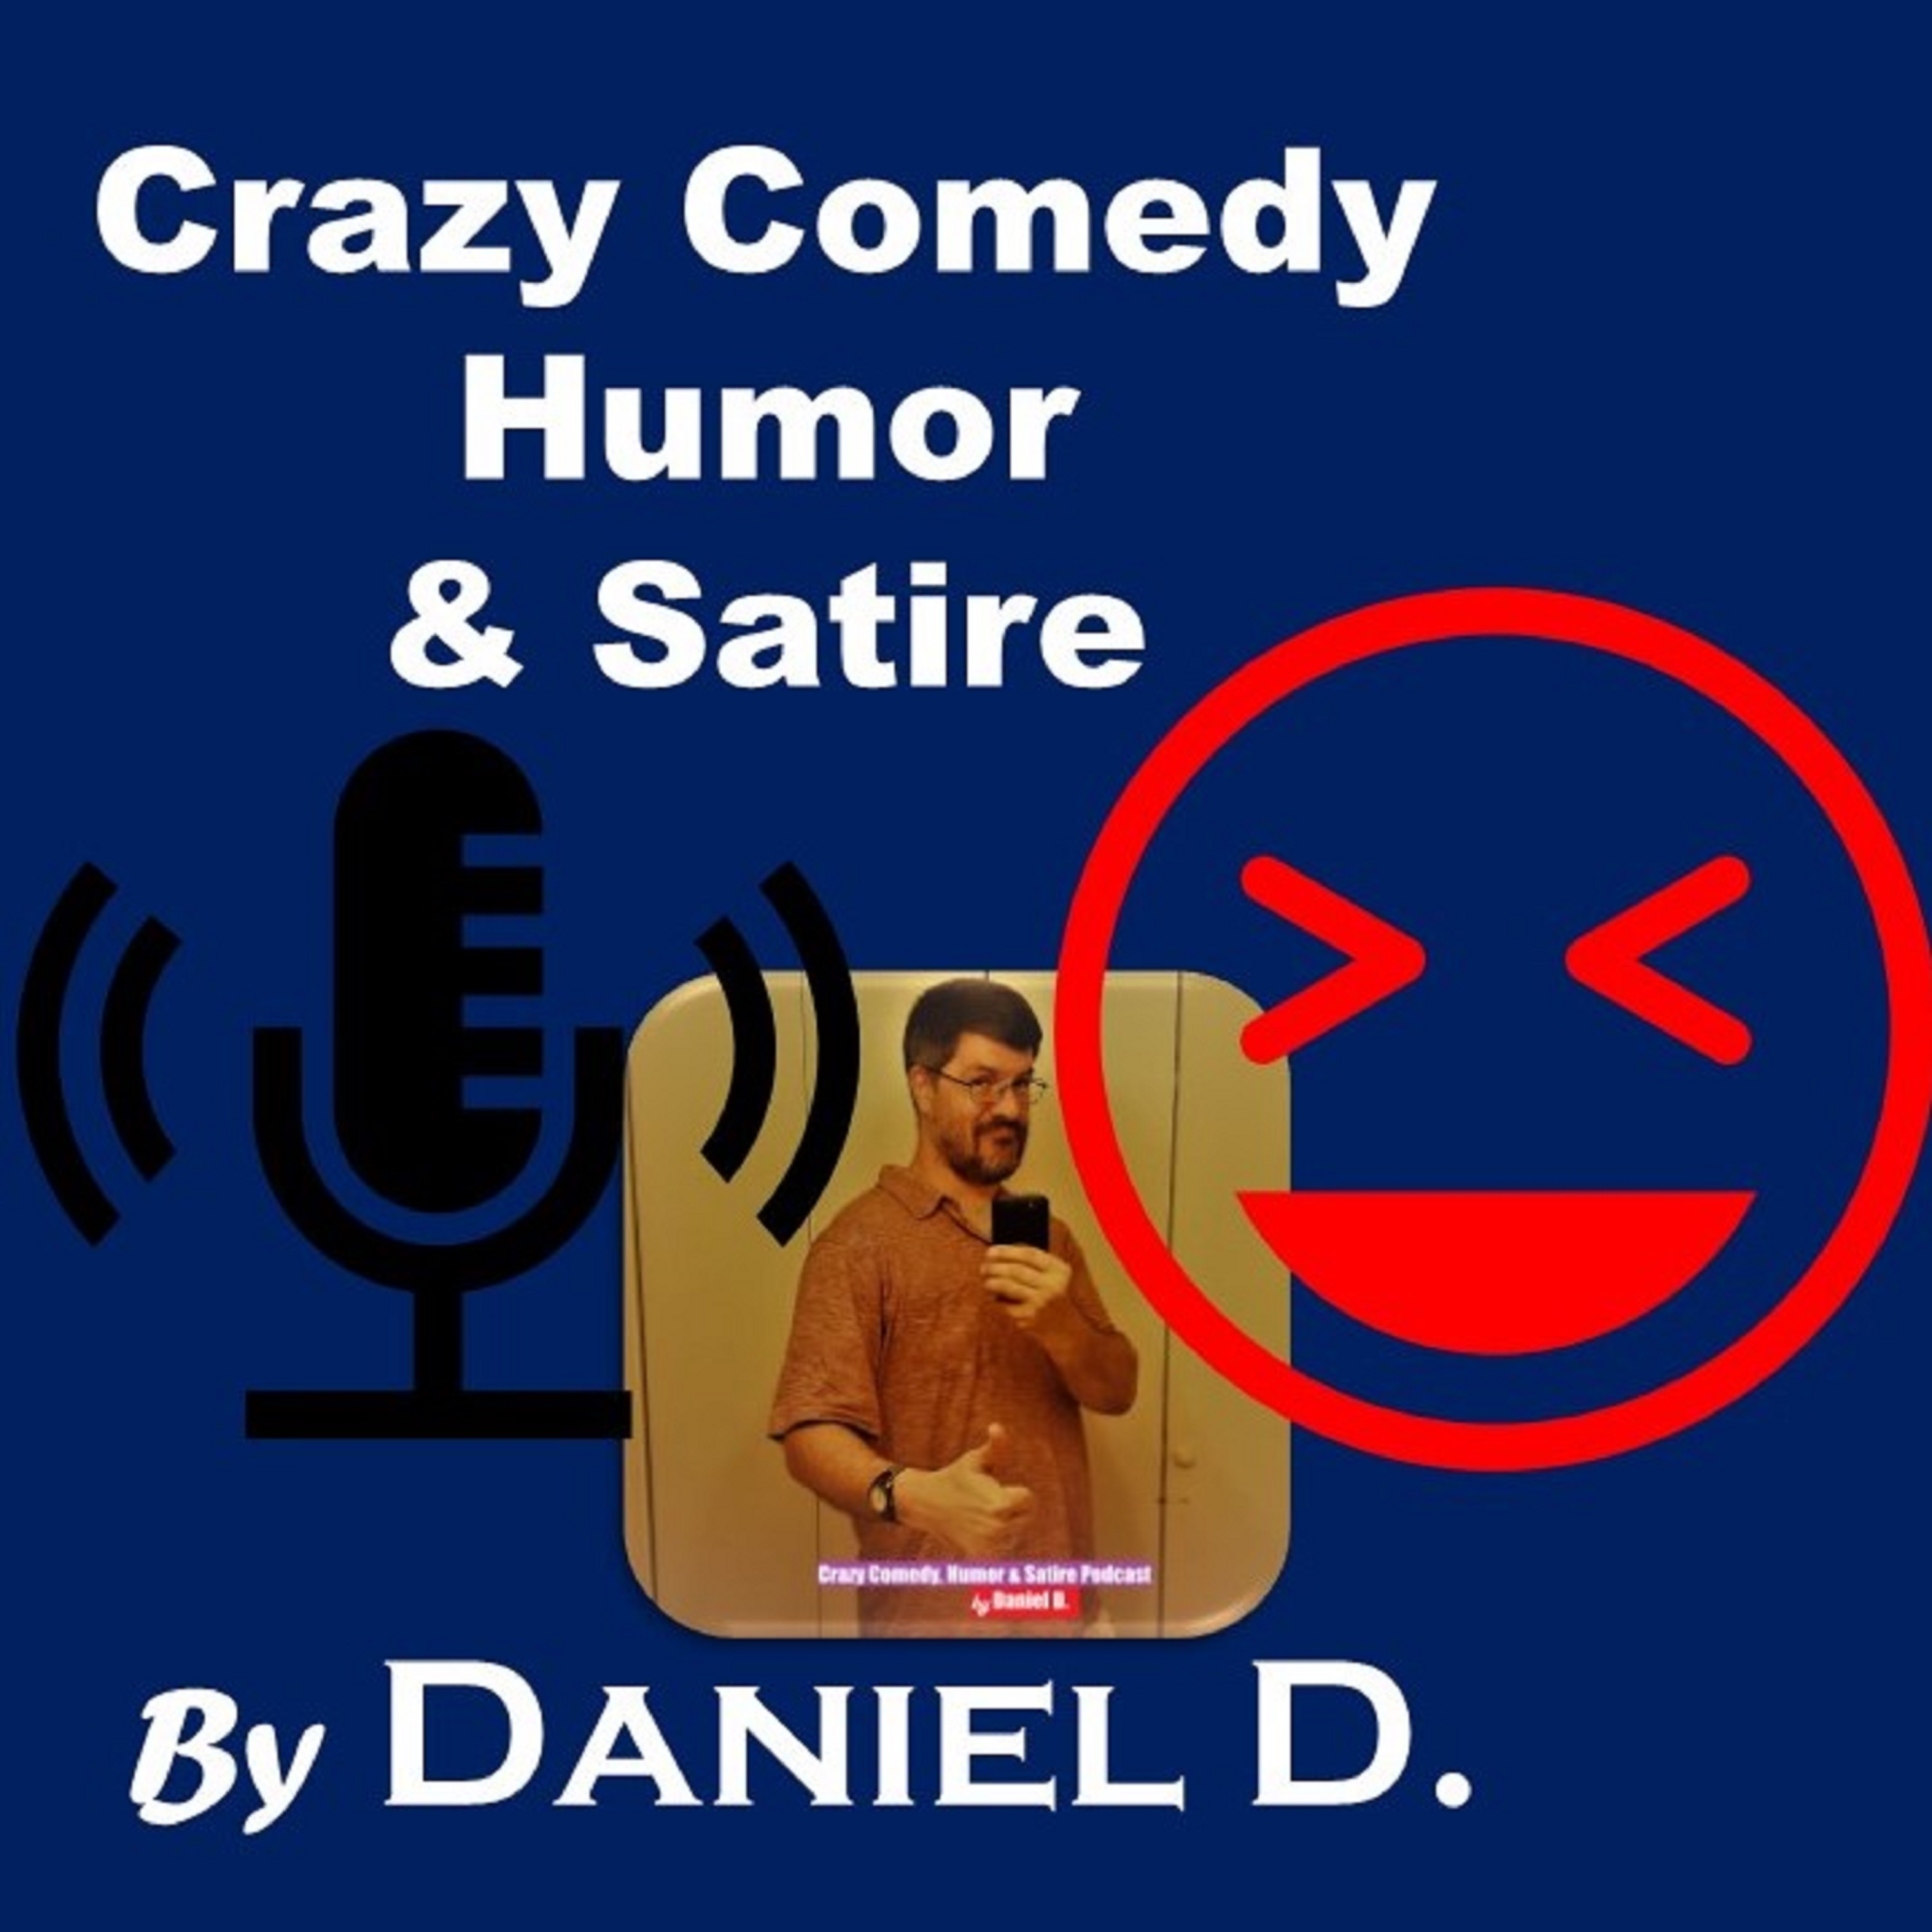 Artwork for Episode 6 of The Crazy Comedy, Humor & Satire Podcast